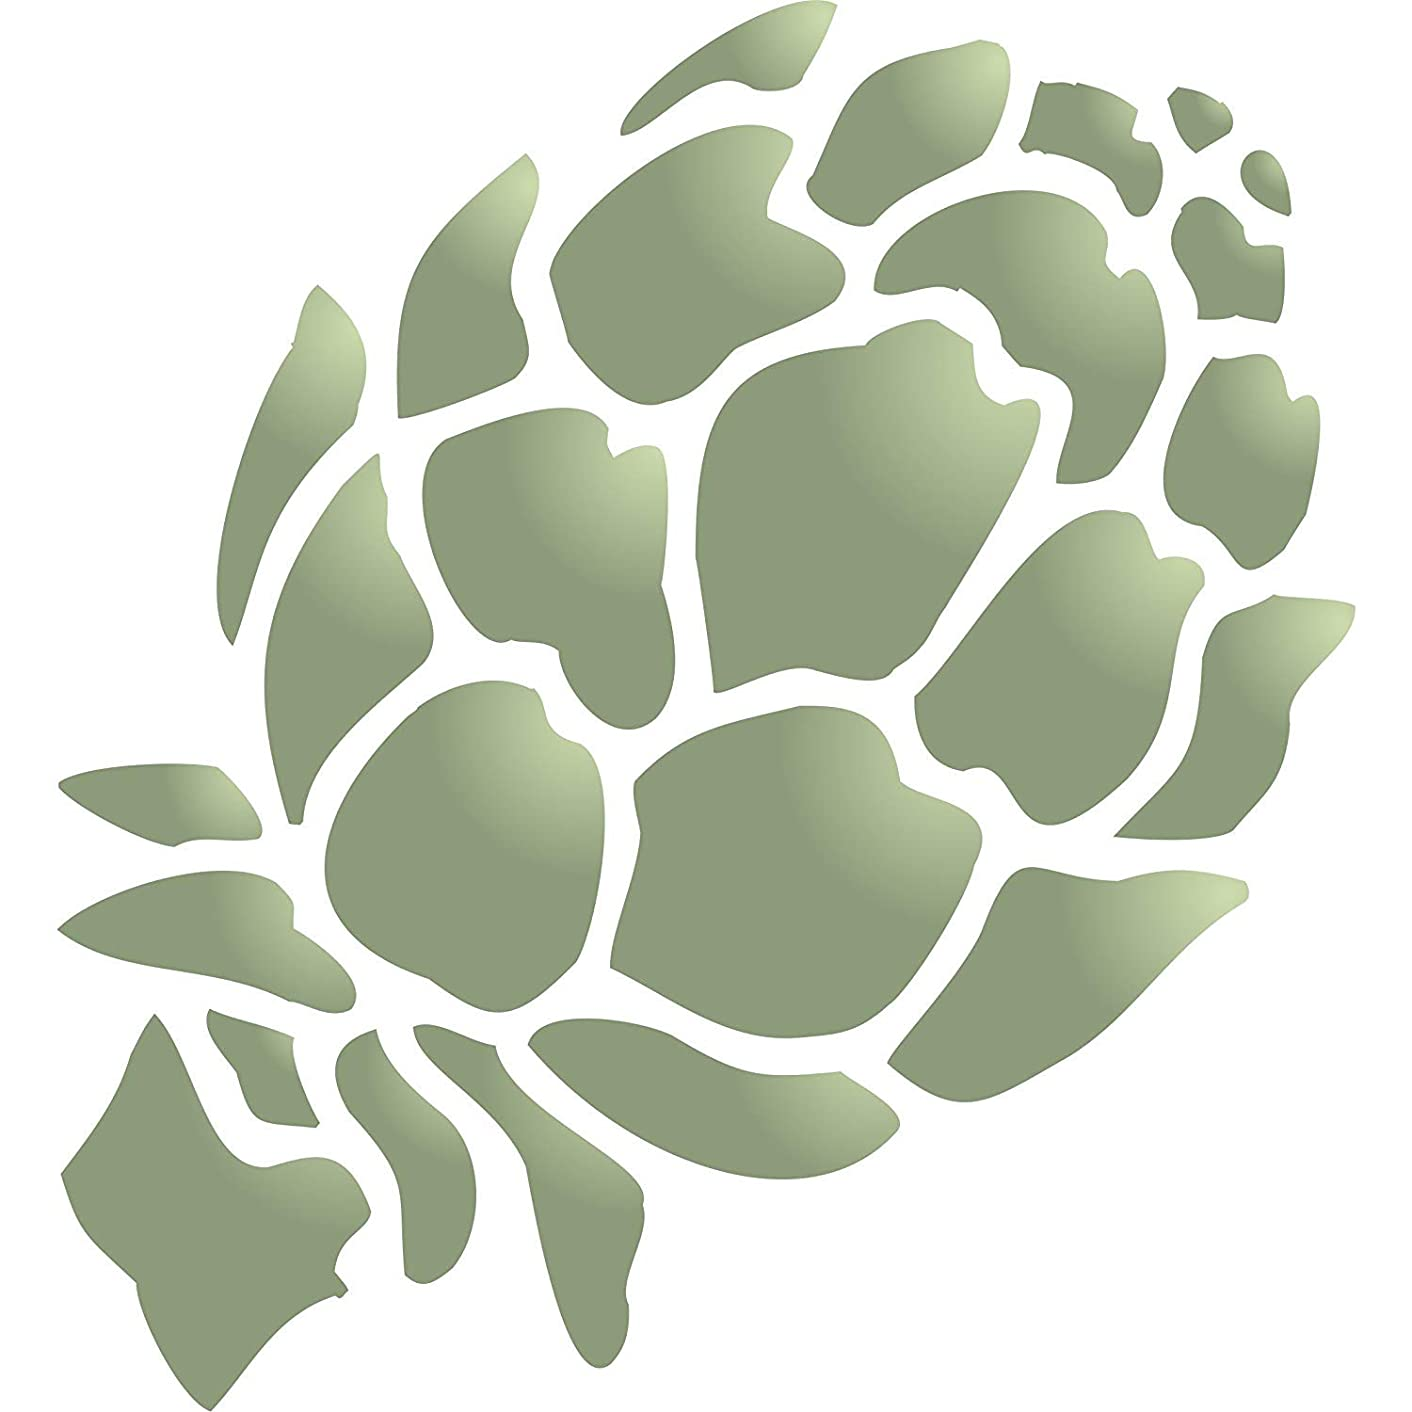 """Artichoke Stencil - (size 4.5""""w x 5""""h) Reusable Wall Stencils for Painting - Best Quality Vegetable Kitchen Stencil Ideas - Use on Walls, Floors, Fabrics, Glass, Wood, Terracotta, and More…"""